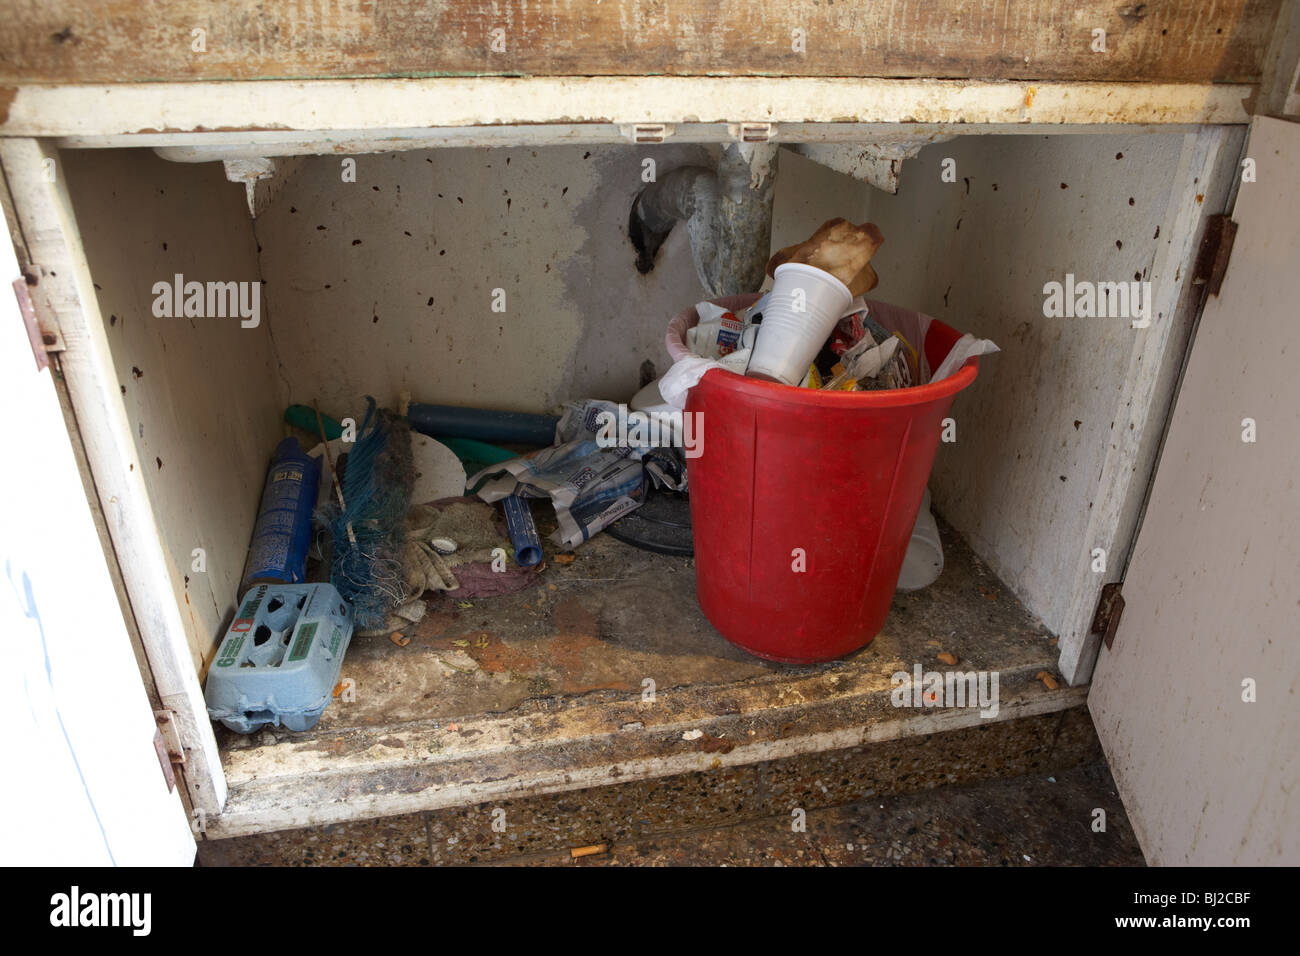 dirty unhygienic under sink in a dirty run down kitchen in south america - Stock Image